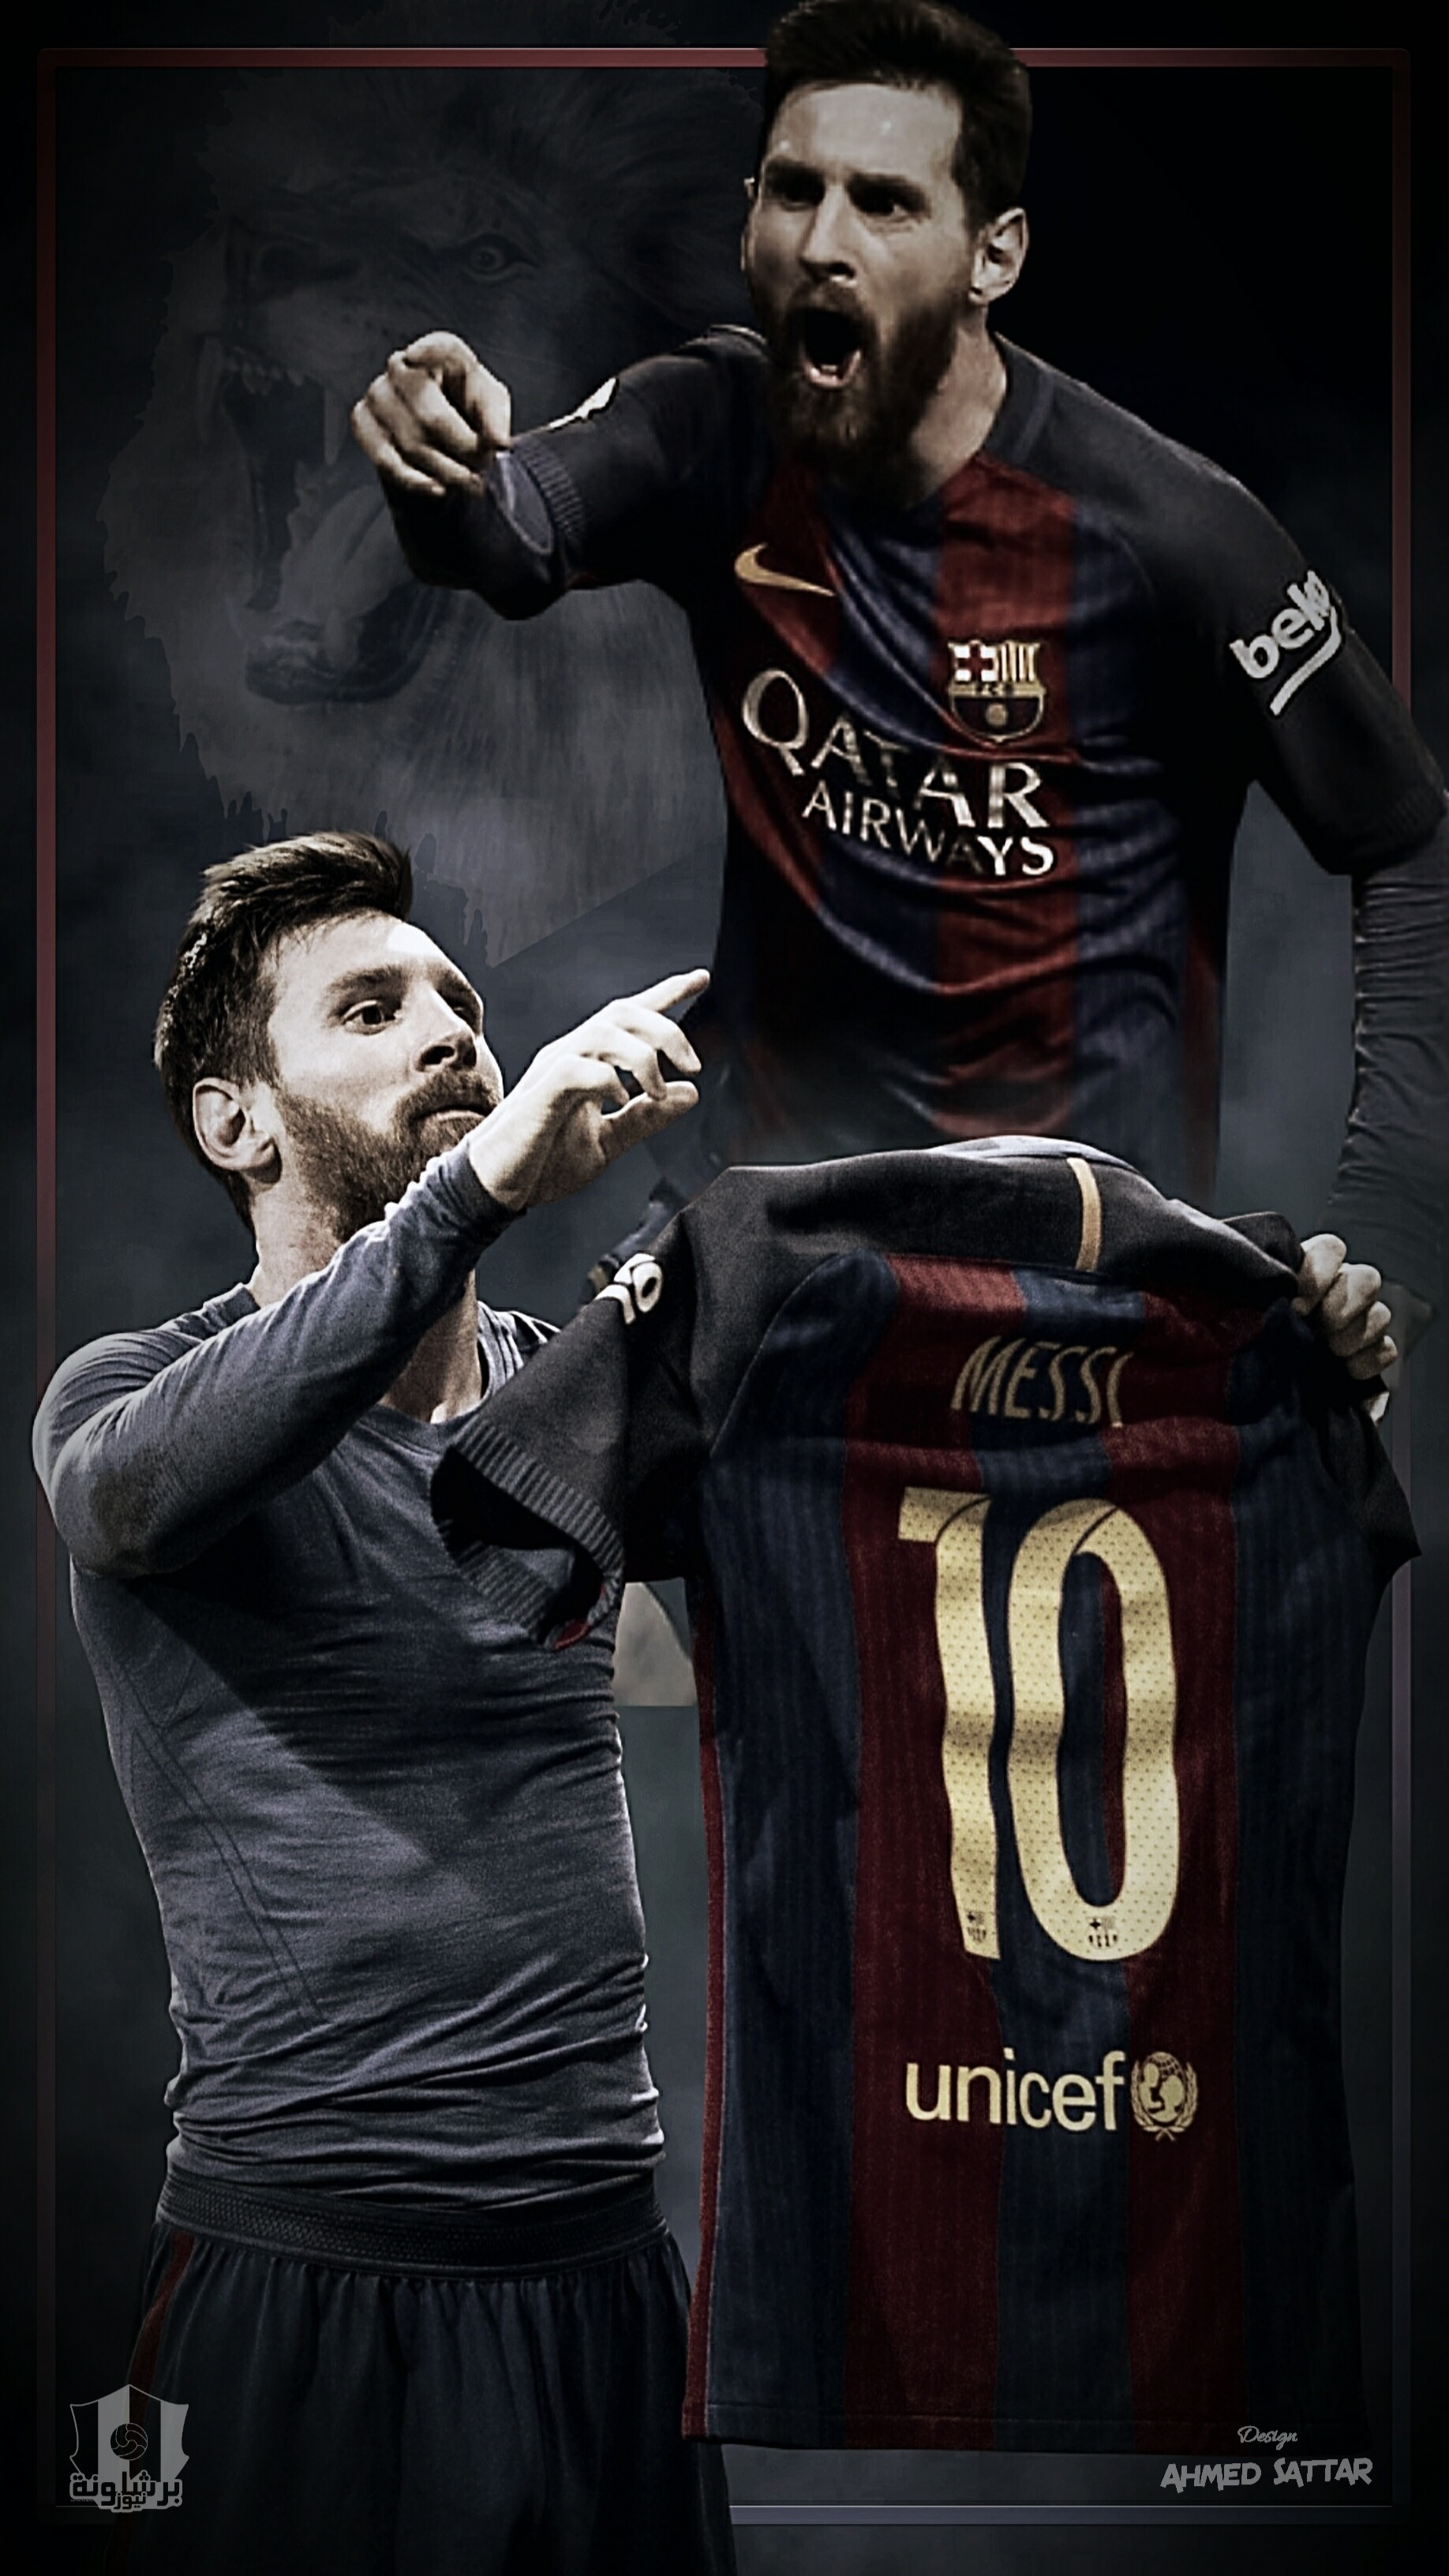 Messi background 2018 73 images - Leo messi wallpaper ...